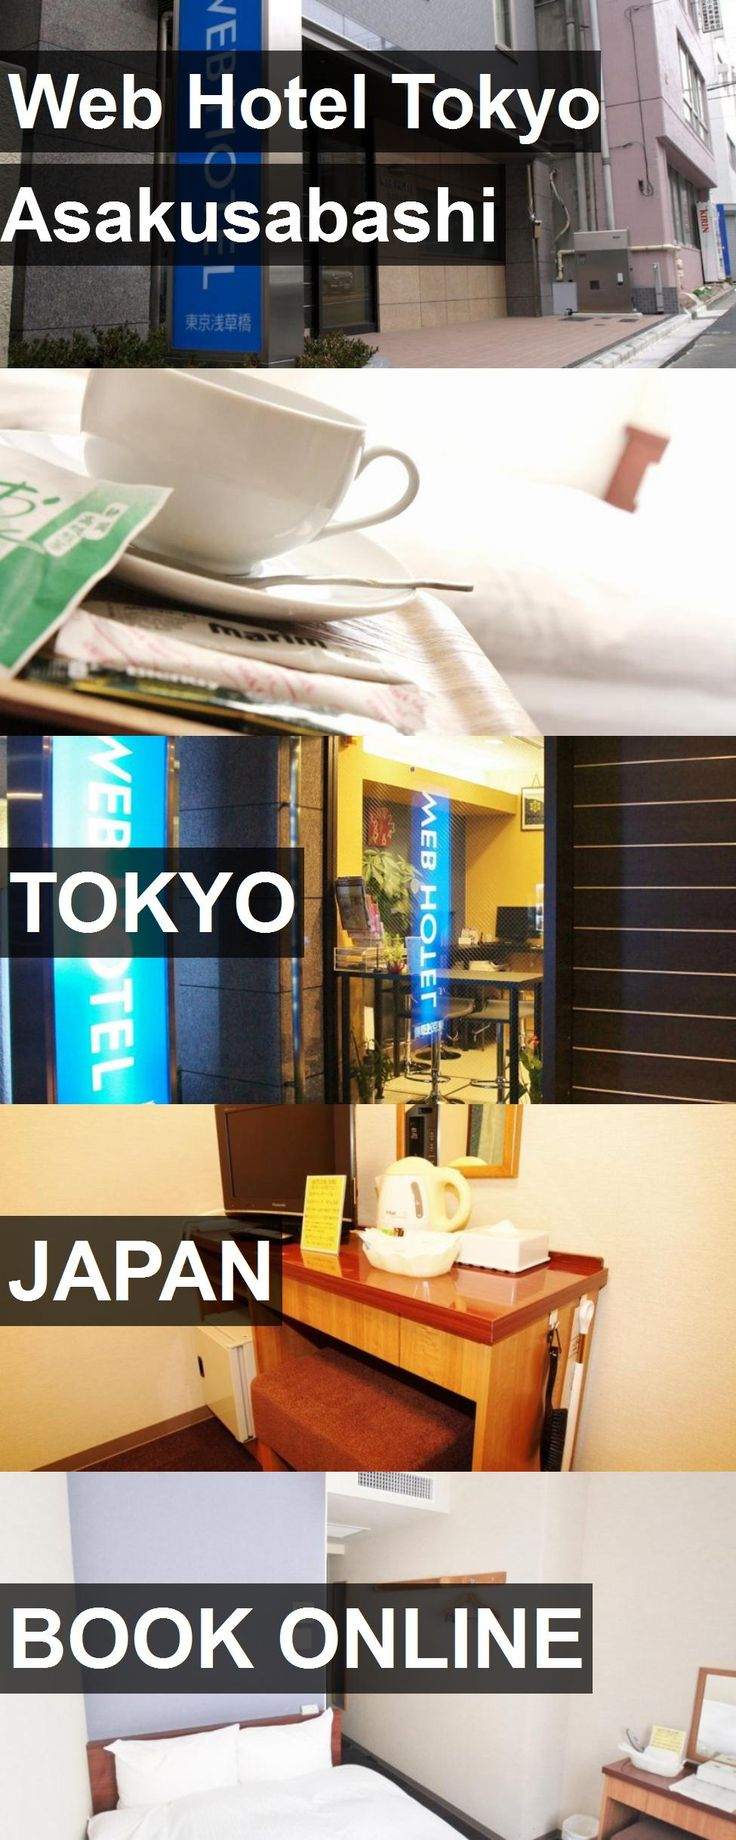 Web Hotel Tokyo Asakusabashi in Tokyo, Japan. For more information, photos, reviews and best prices please follow the link. #Japan #Tokyo #travel #vacation #hotel